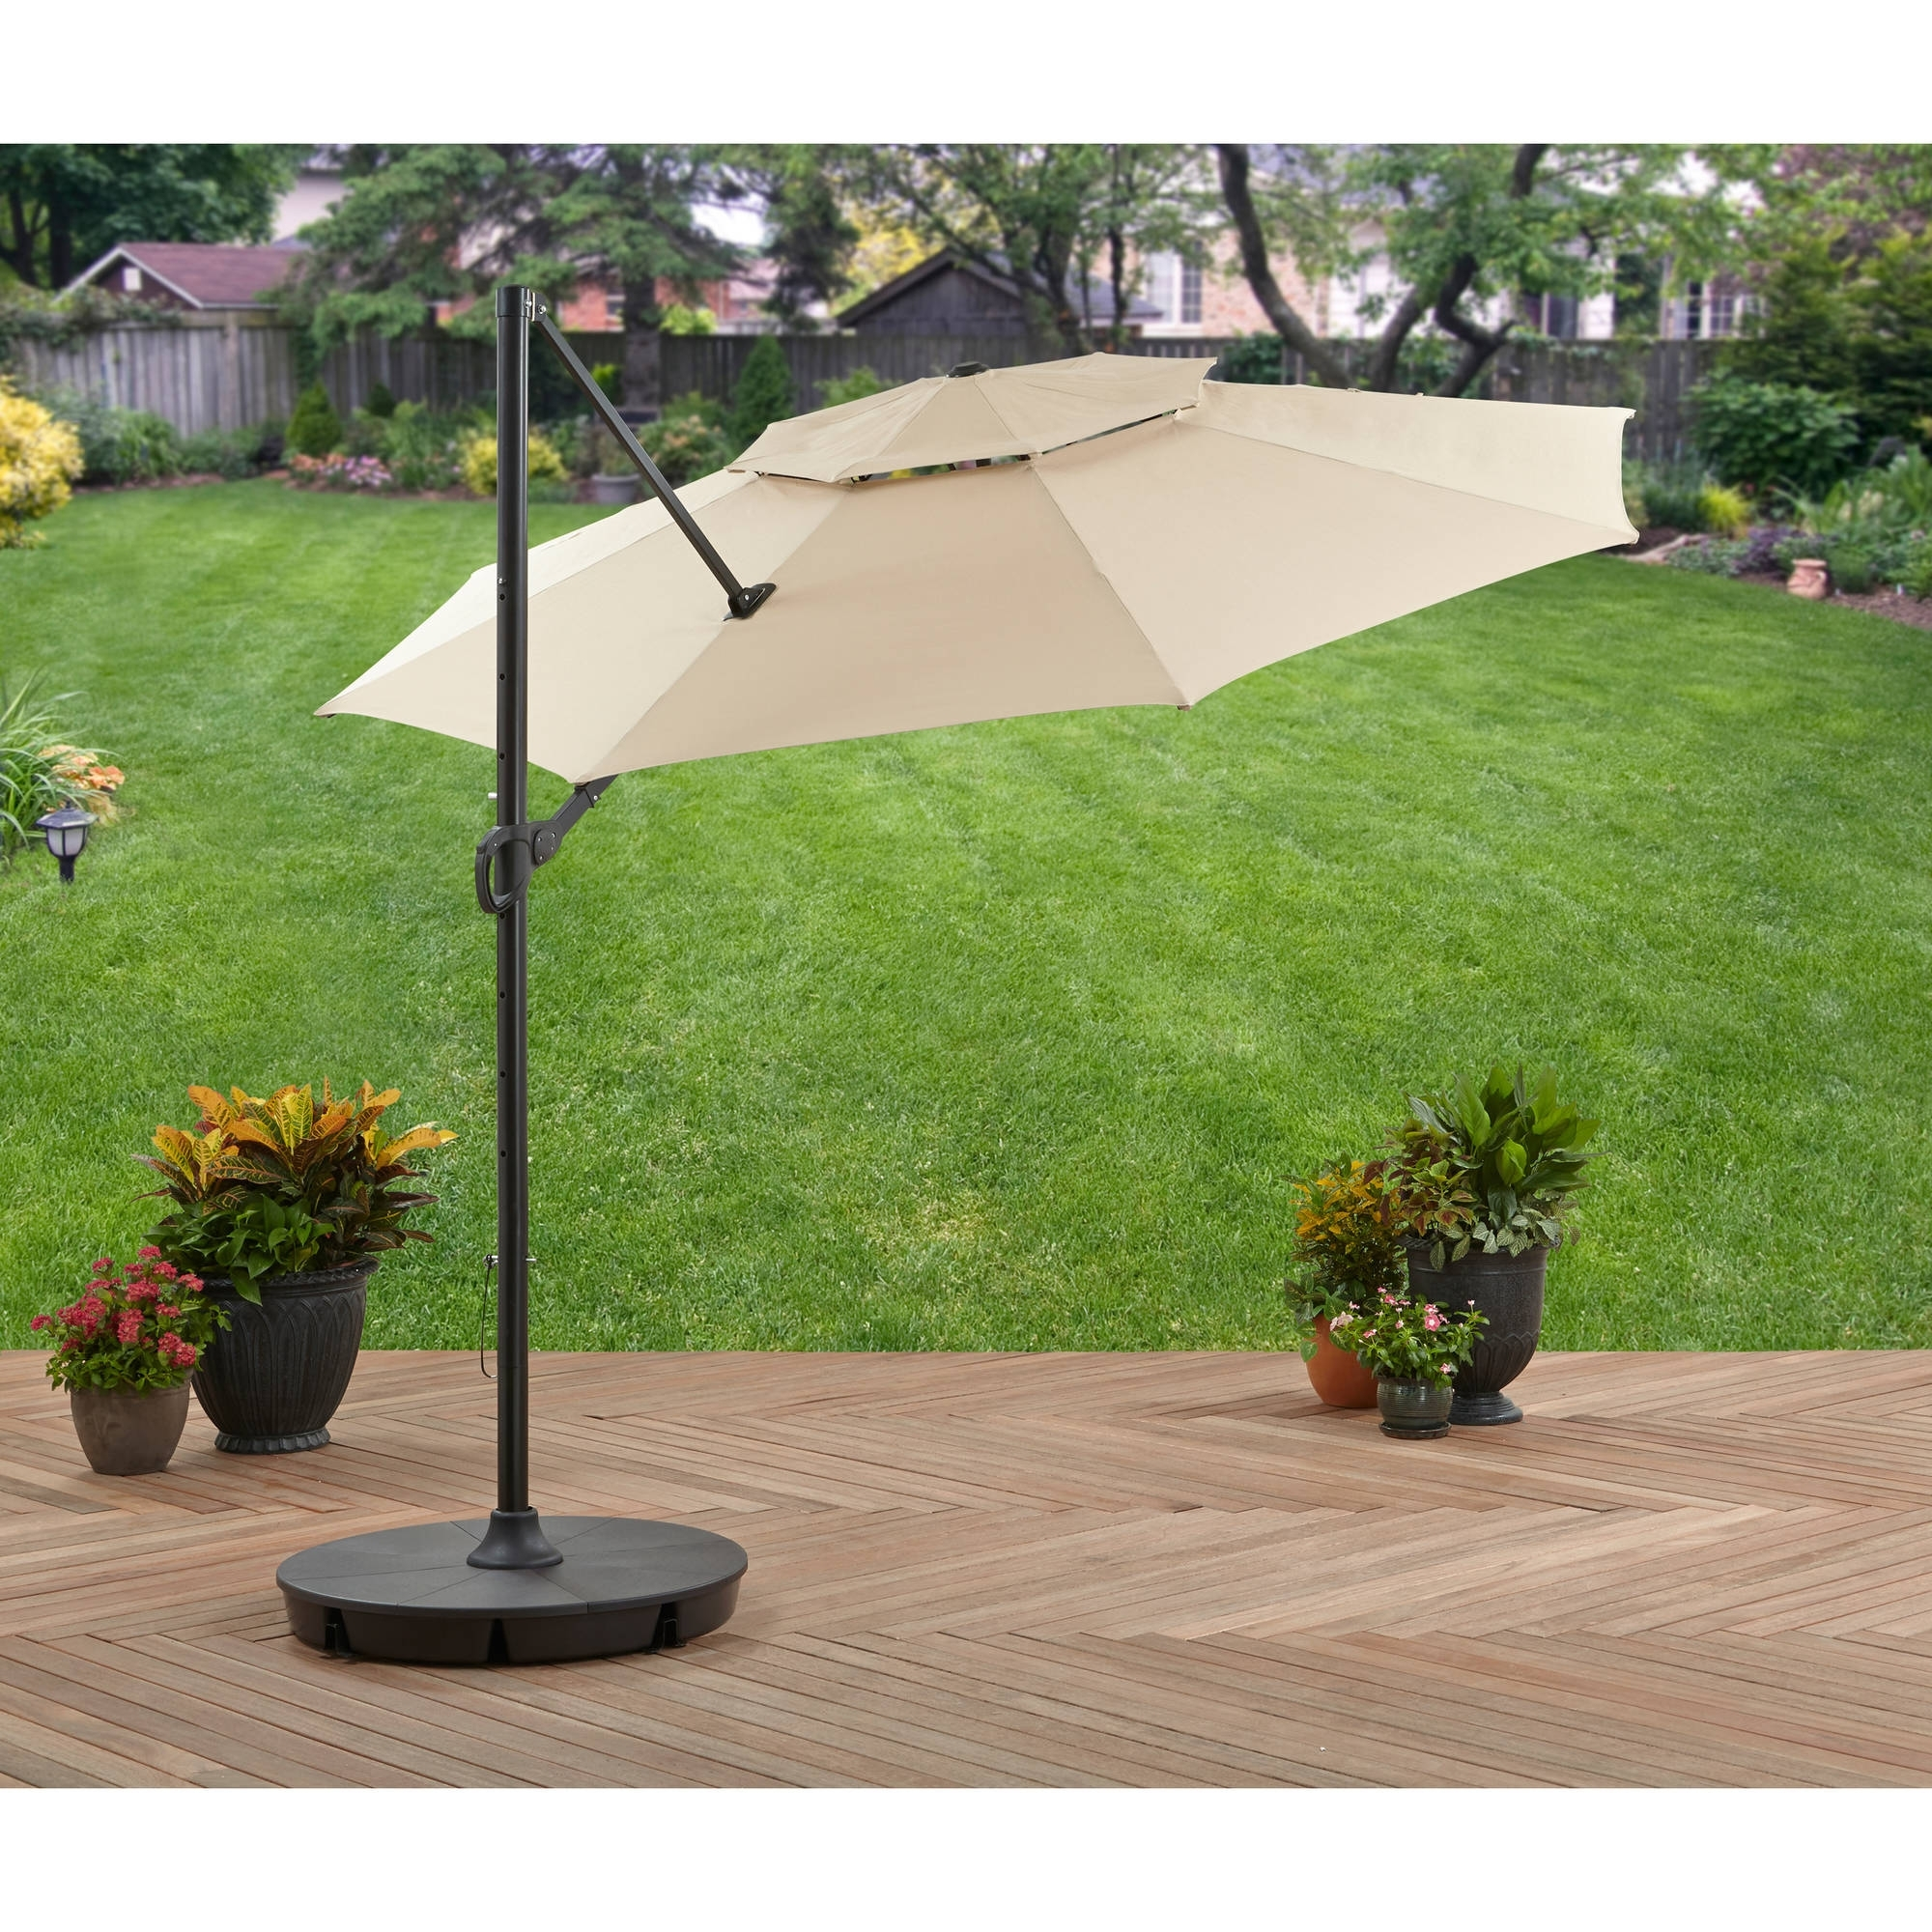 Walmart Patio Umbrellas Throughout Fashionable Better Homes And Gardens 11' Offset Umbrella With Base, Tan (View 19 of 20)